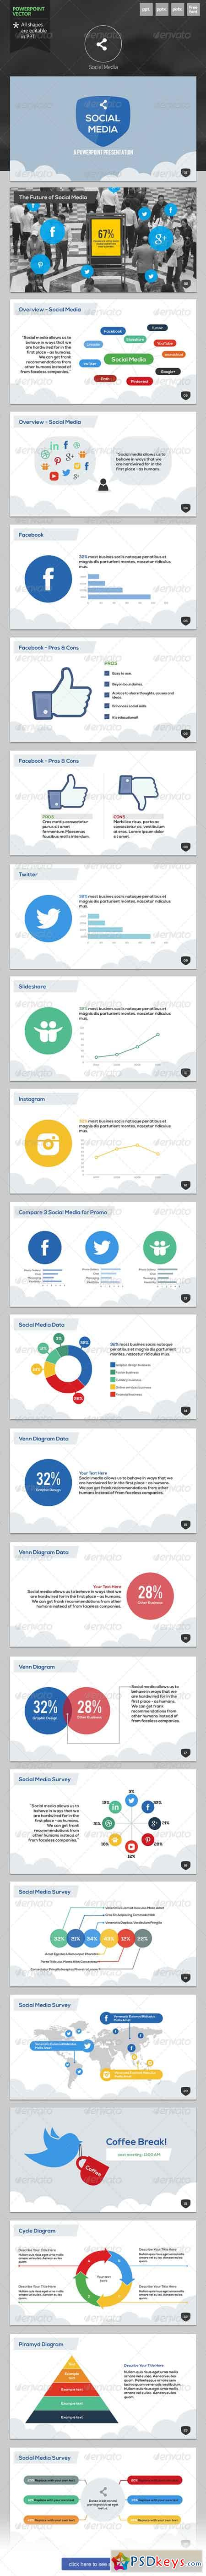 social media - powerpoint template 6335900 » free download, Powerpoint templates